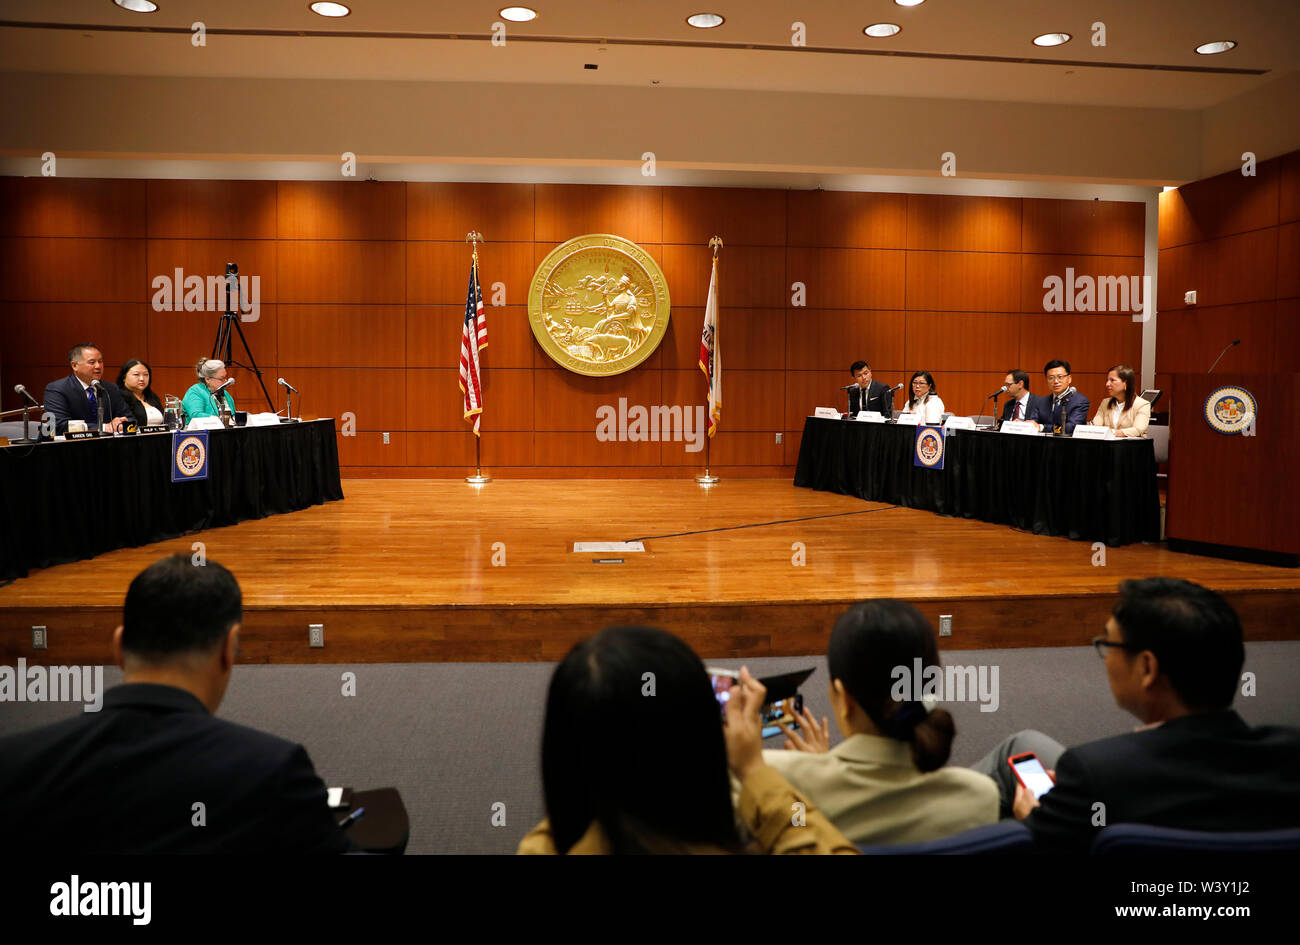 (190718) -- SAN FRANCISCO, July 18, 2019 (Xinhua) -- A hearing on the effects of U.S.-China trade dispute is held in San Francisco, California, the United States, July 17, 2019. California's agriculture was 'the hardest hit' in the ongoing U.S.-China trade dispute, with the biggest drop in exports to China recorded, a state assembly leader said Wednesday. American wine exports to China have fallen by 25 percent, with 90 percent of the loss coming from California, since U.S. President Donald Trump escalated trade frictions with China by imposing steep tariffs early this year, Phil Ting, chai - Stock Image